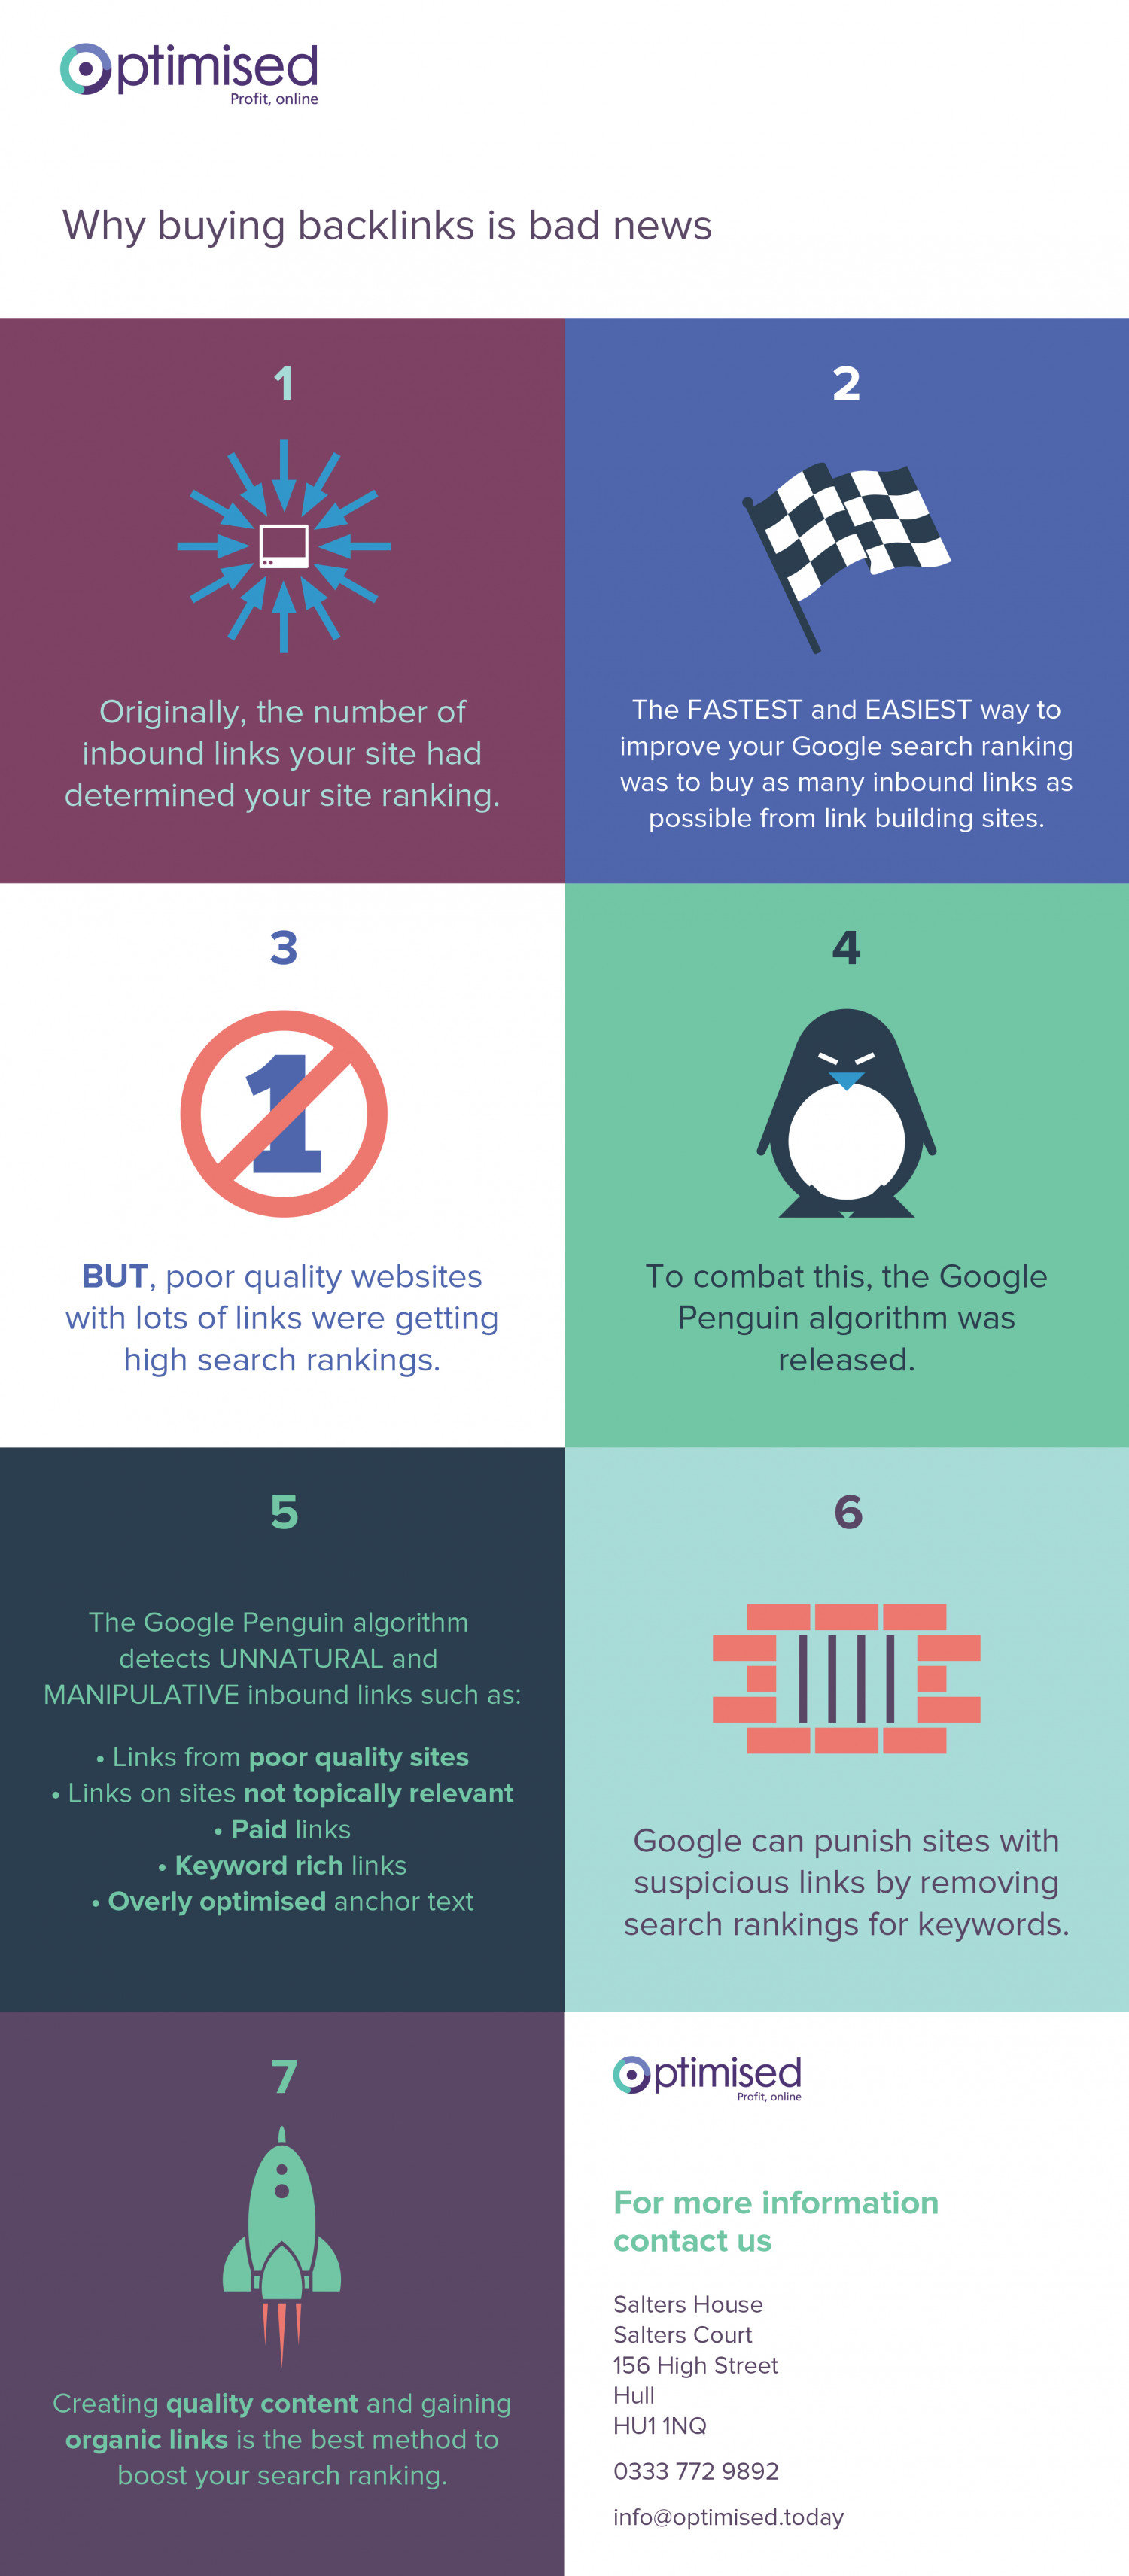 Optimised - Why buying backlinks is bad news Infographic